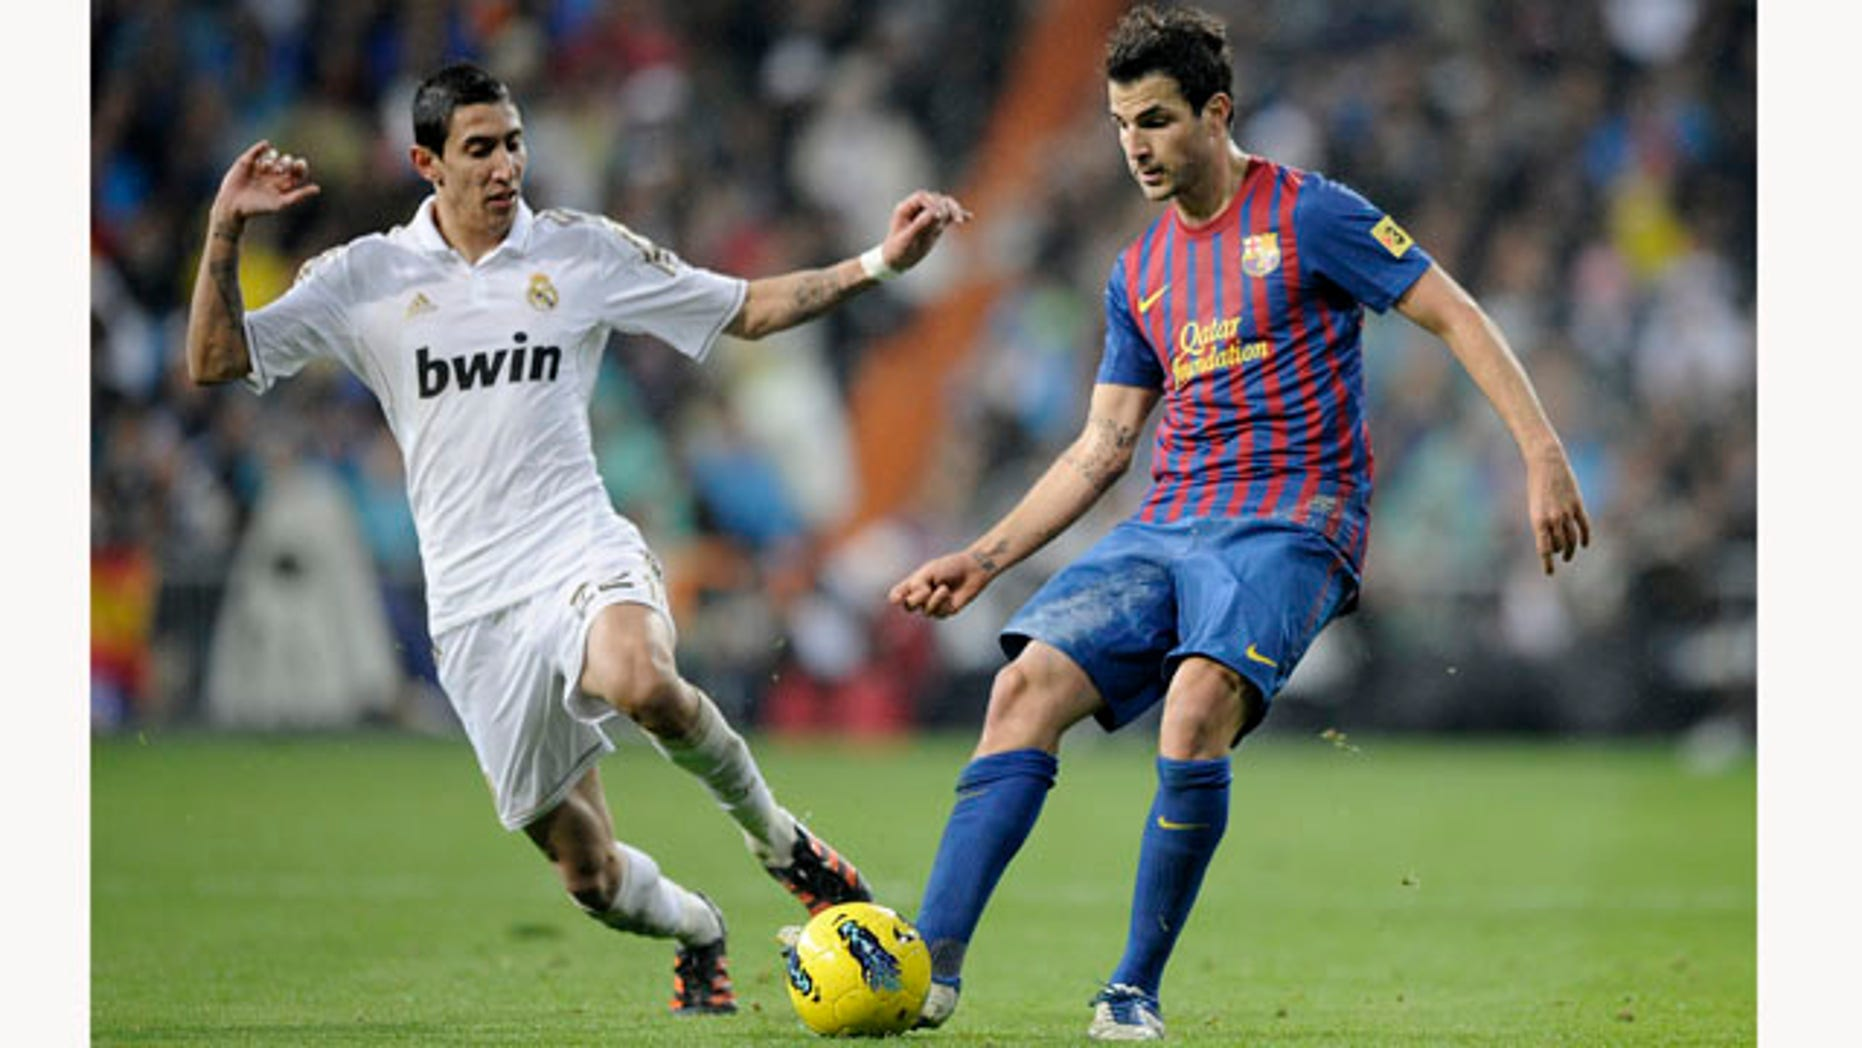 Real Madrid's Angel Di Maria from Argentina, left, duels for the ball with Barcelona's Cesc Fabregas, right, during their Spanish La Liga soccer match at the Santiago Bernabeu stadium, in Madrid, Saturday, Dec. 10, 2011. (AP Photo/Daniel Ochoa de Olza)